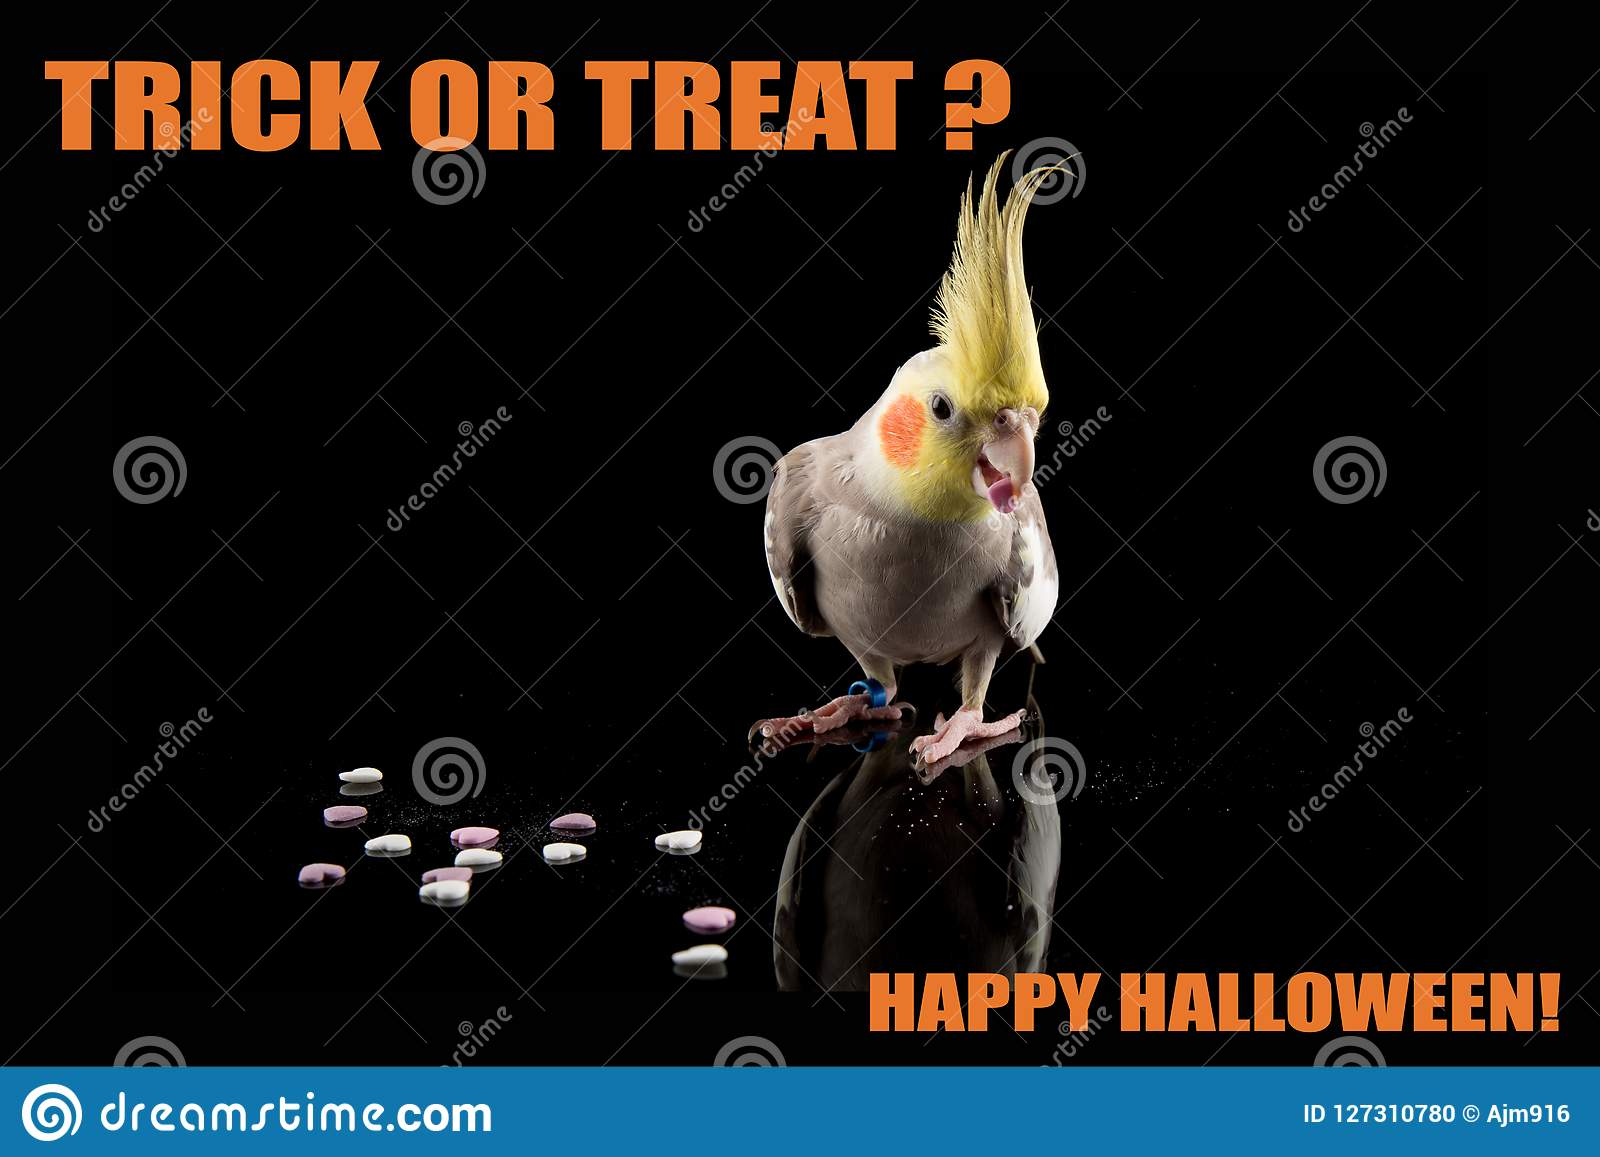 Funny Parrot Halloween Meme Trick Or Treat Cockatiel Eating Candy Cool Memes And Quotes Stock Photo Image Of Curious Little 127310780